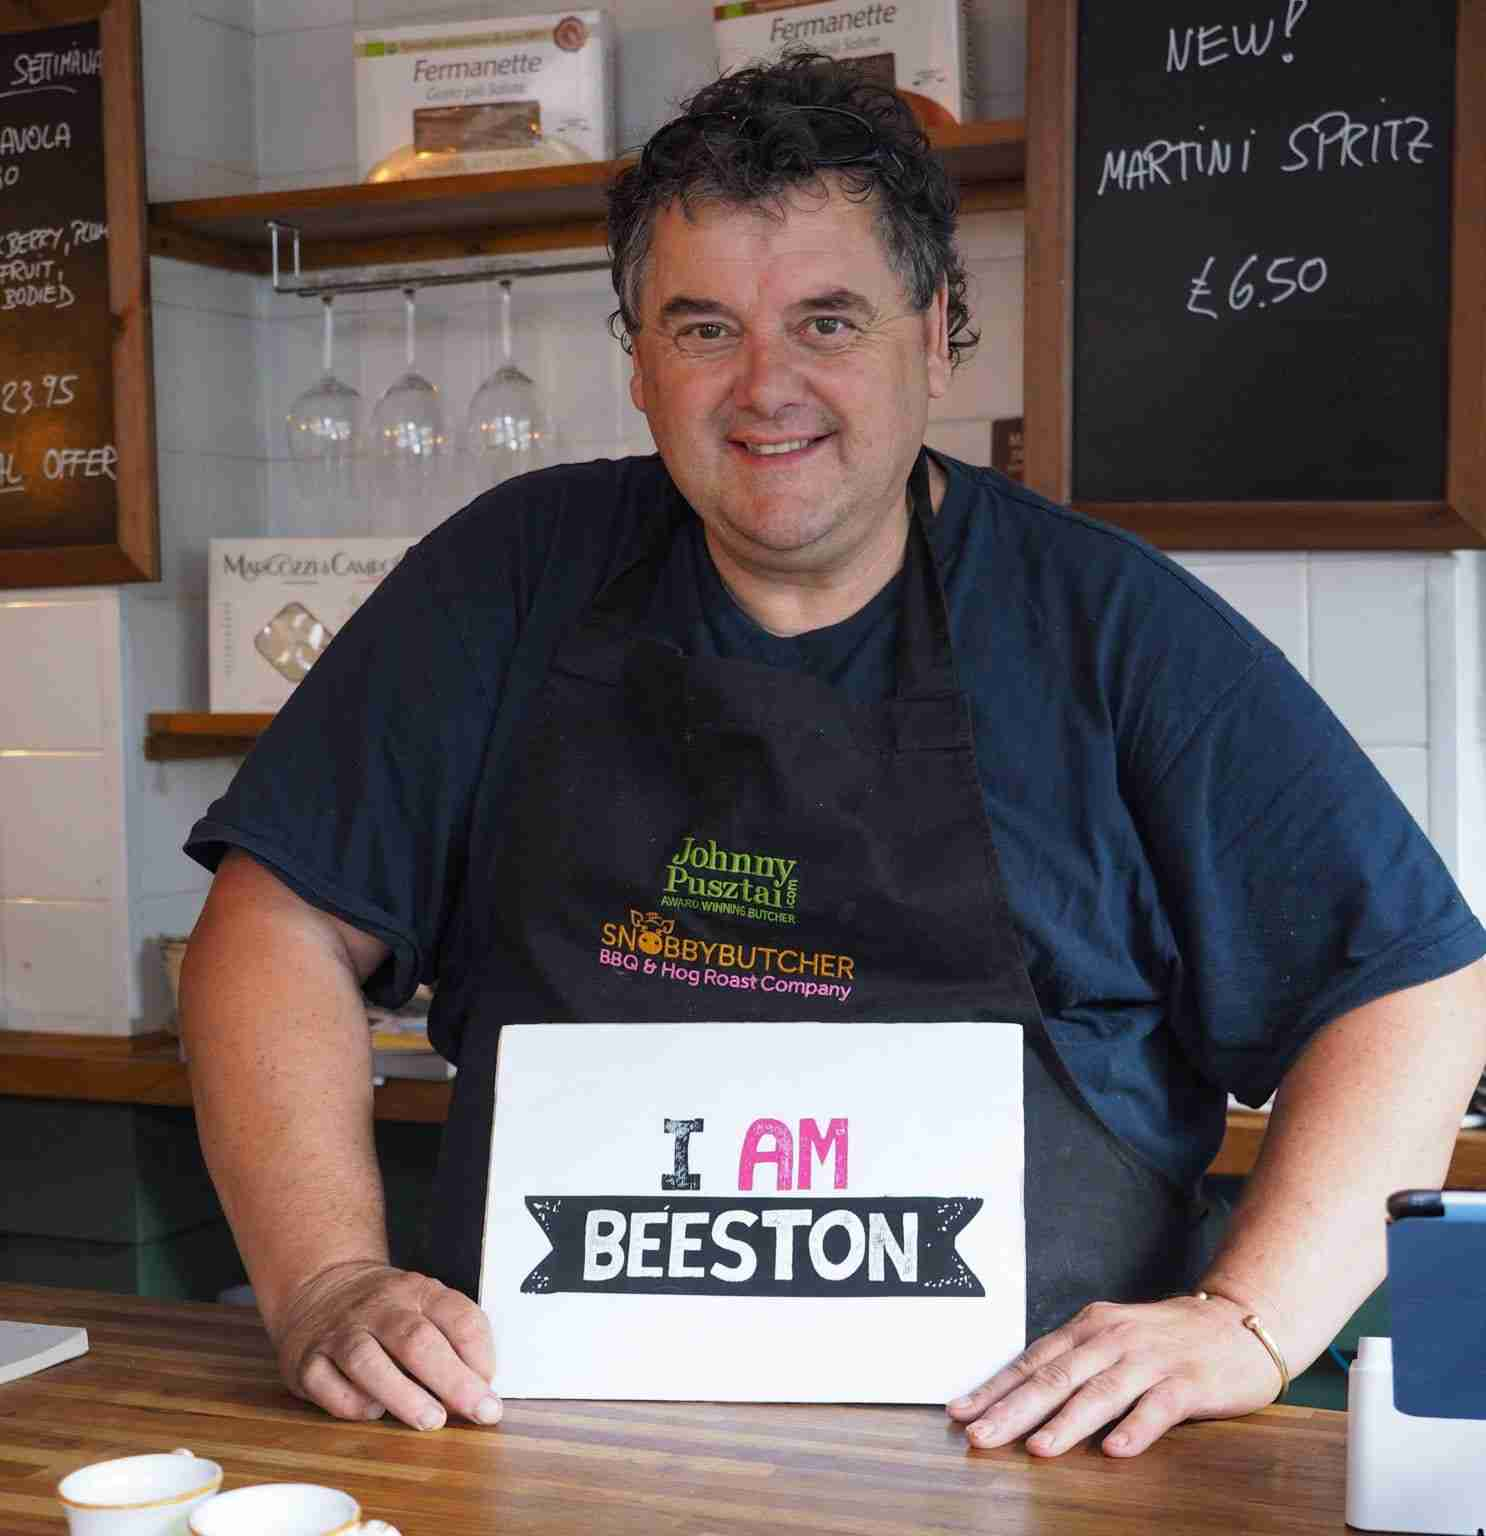 I Am Beeston: Johnny Pusztai -Butcher